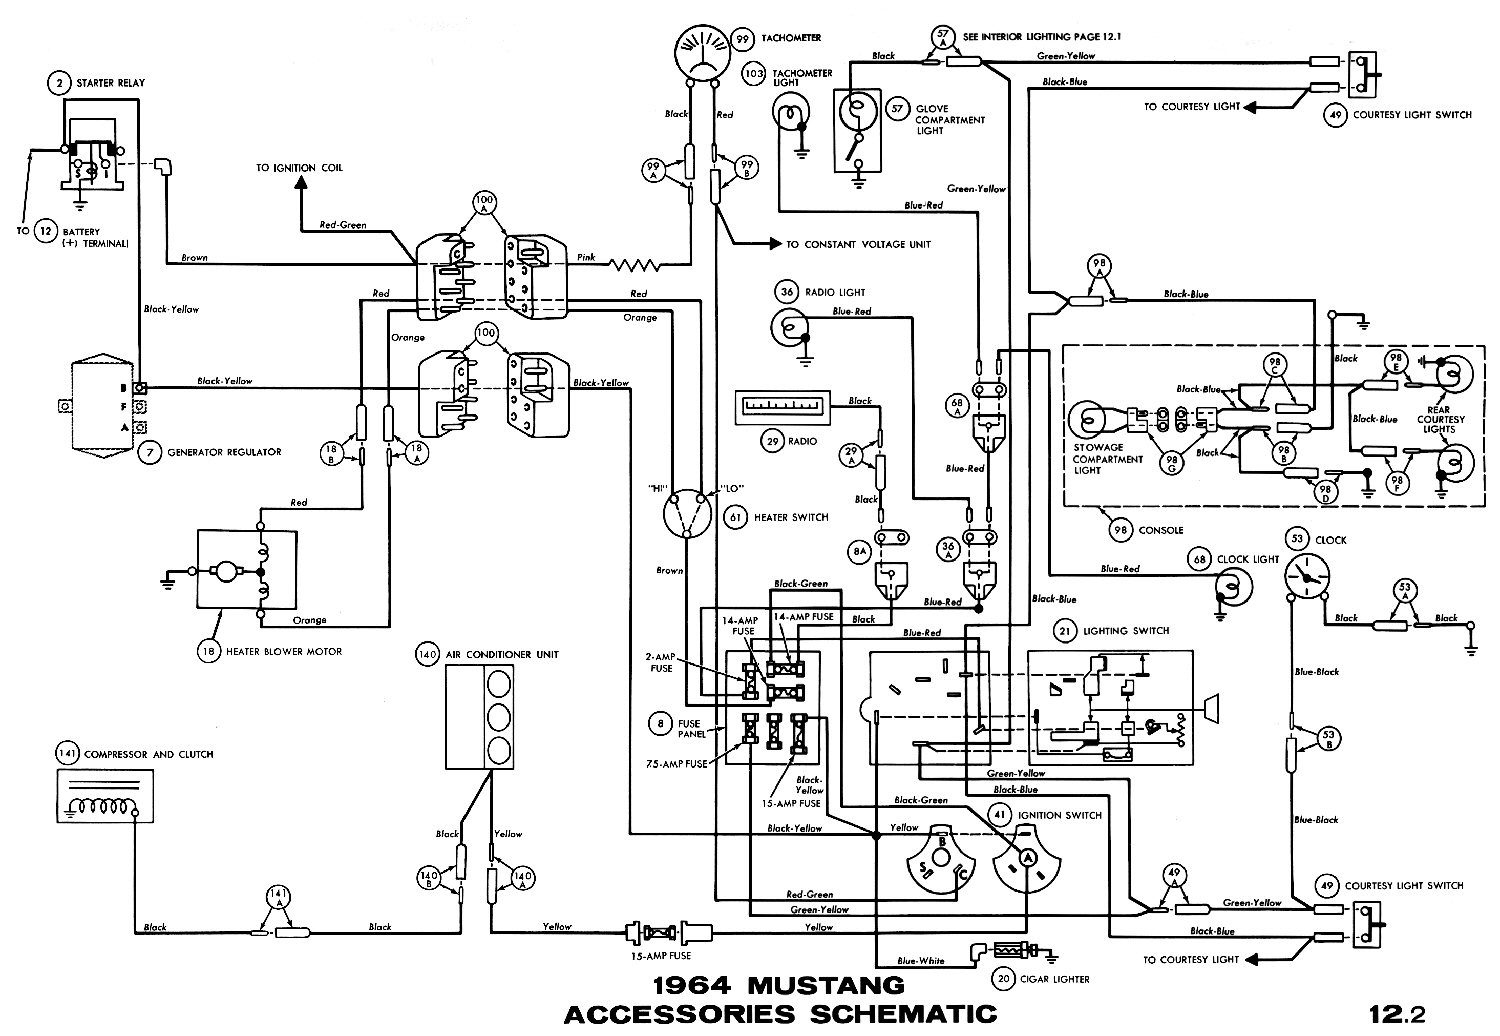 1969 mustang alternator wiring diagram free download